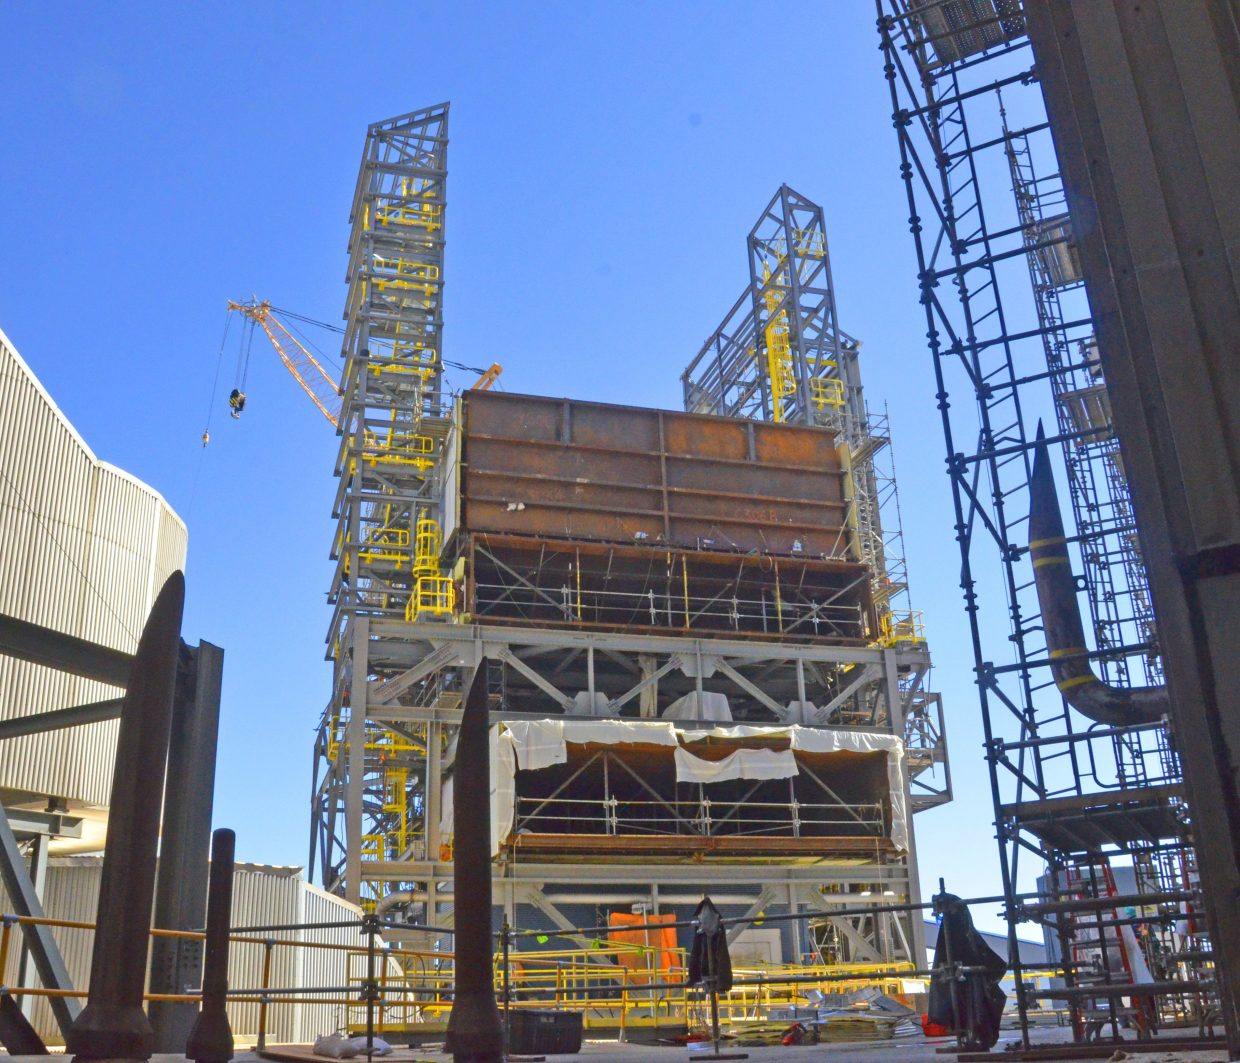 In 2014, Xcel Energy was in the midst of a $140 million upgrade at the Hayden Generating Station that included selective catalytic reduction equipment designed to further curtail the coal fired plant's emissions.